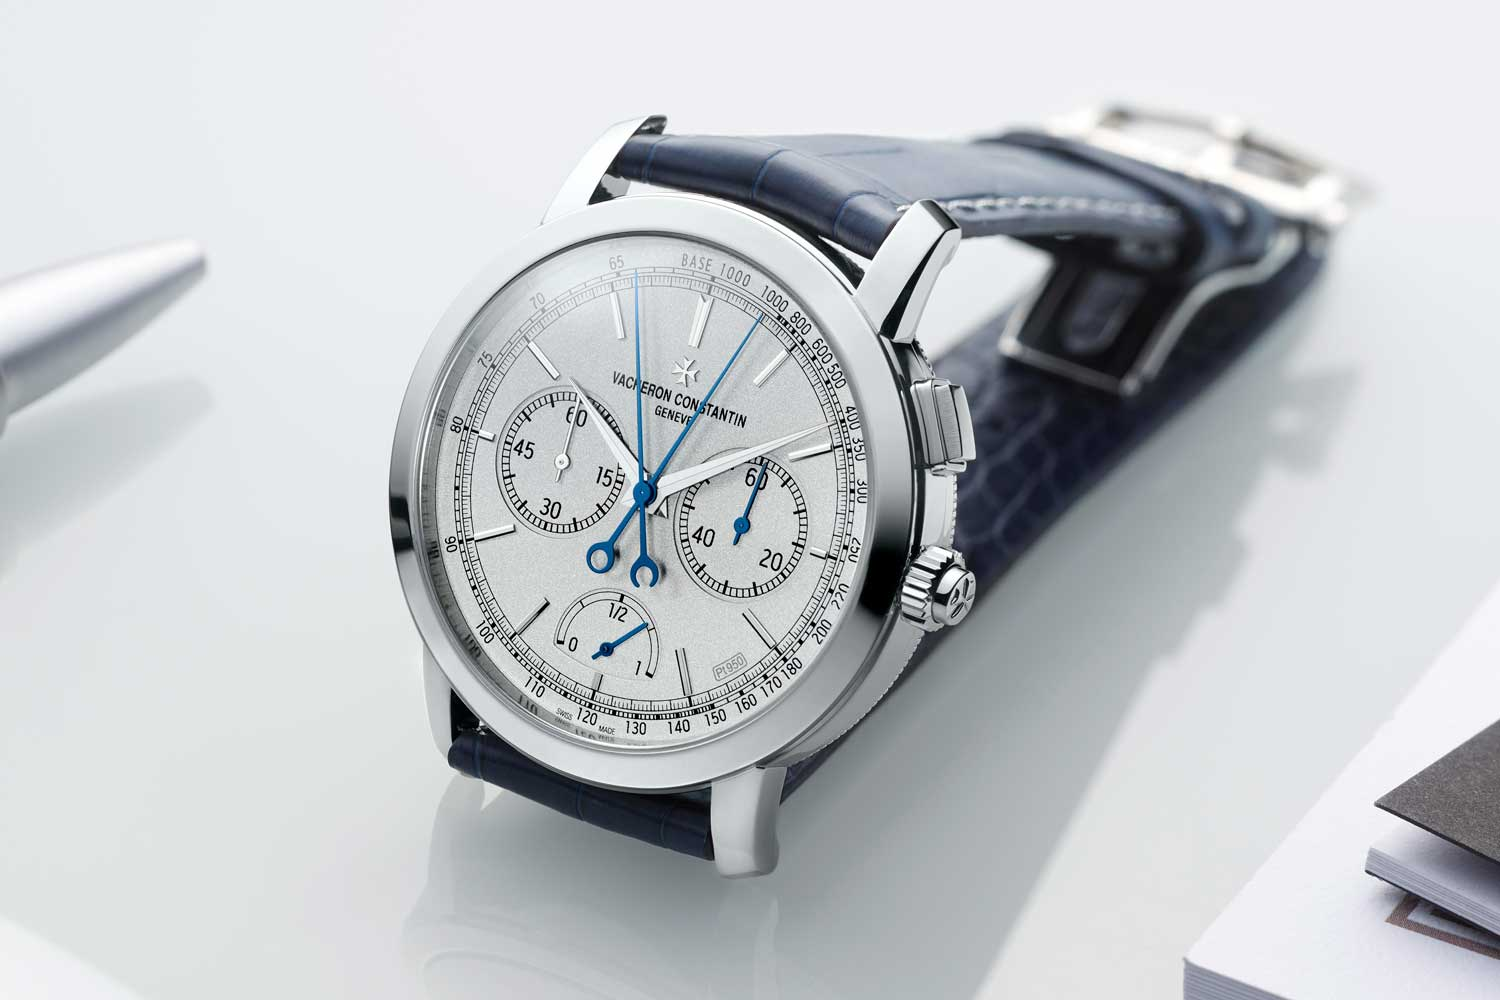 The Traditionnelle Split Second Chronograph will only be made in 15 examples